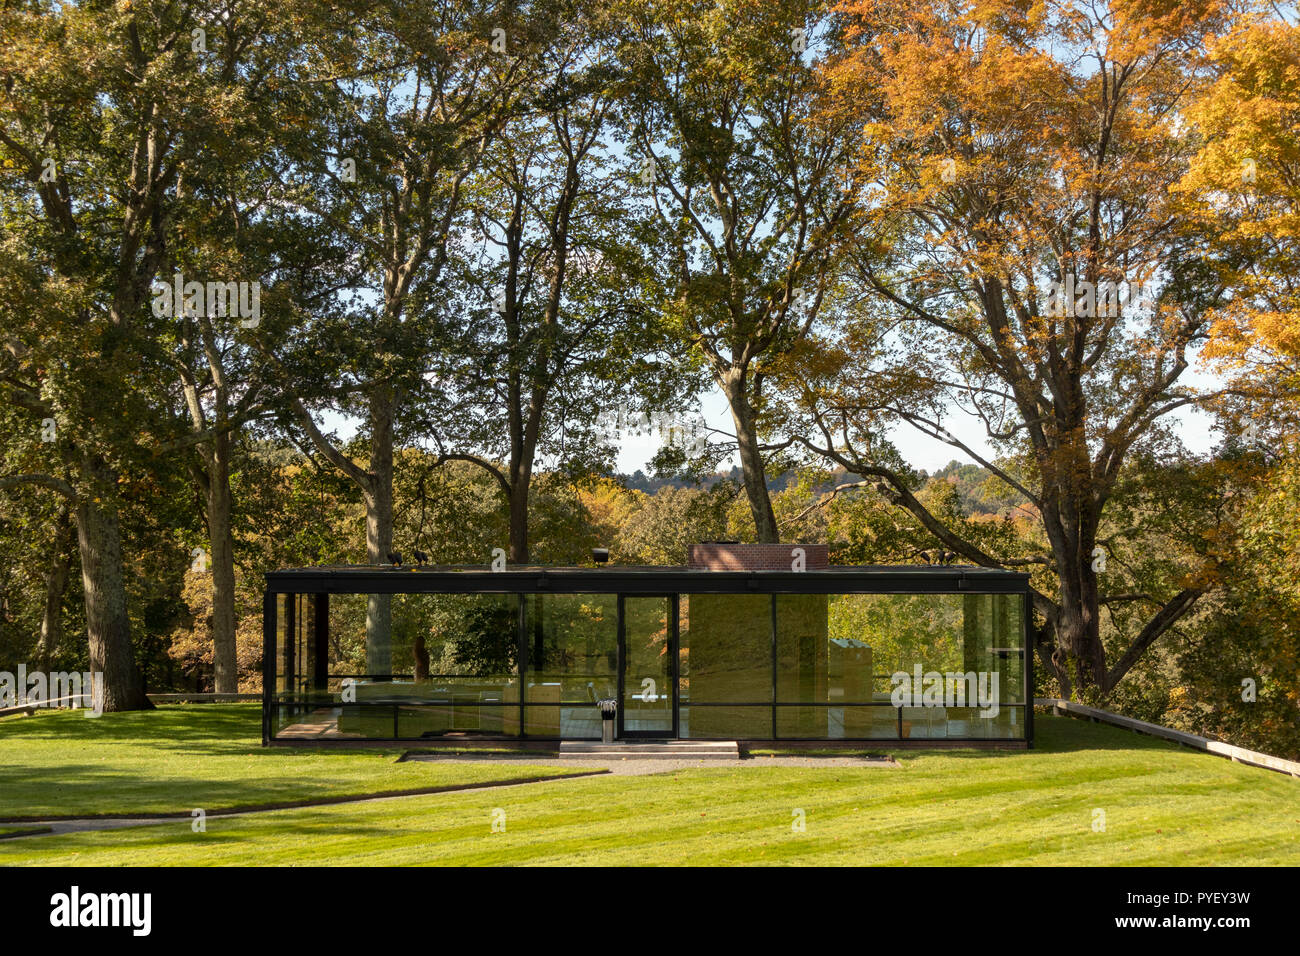 Philip Johnson Glass House the glass house, or johnson house, built in 1949, is now a